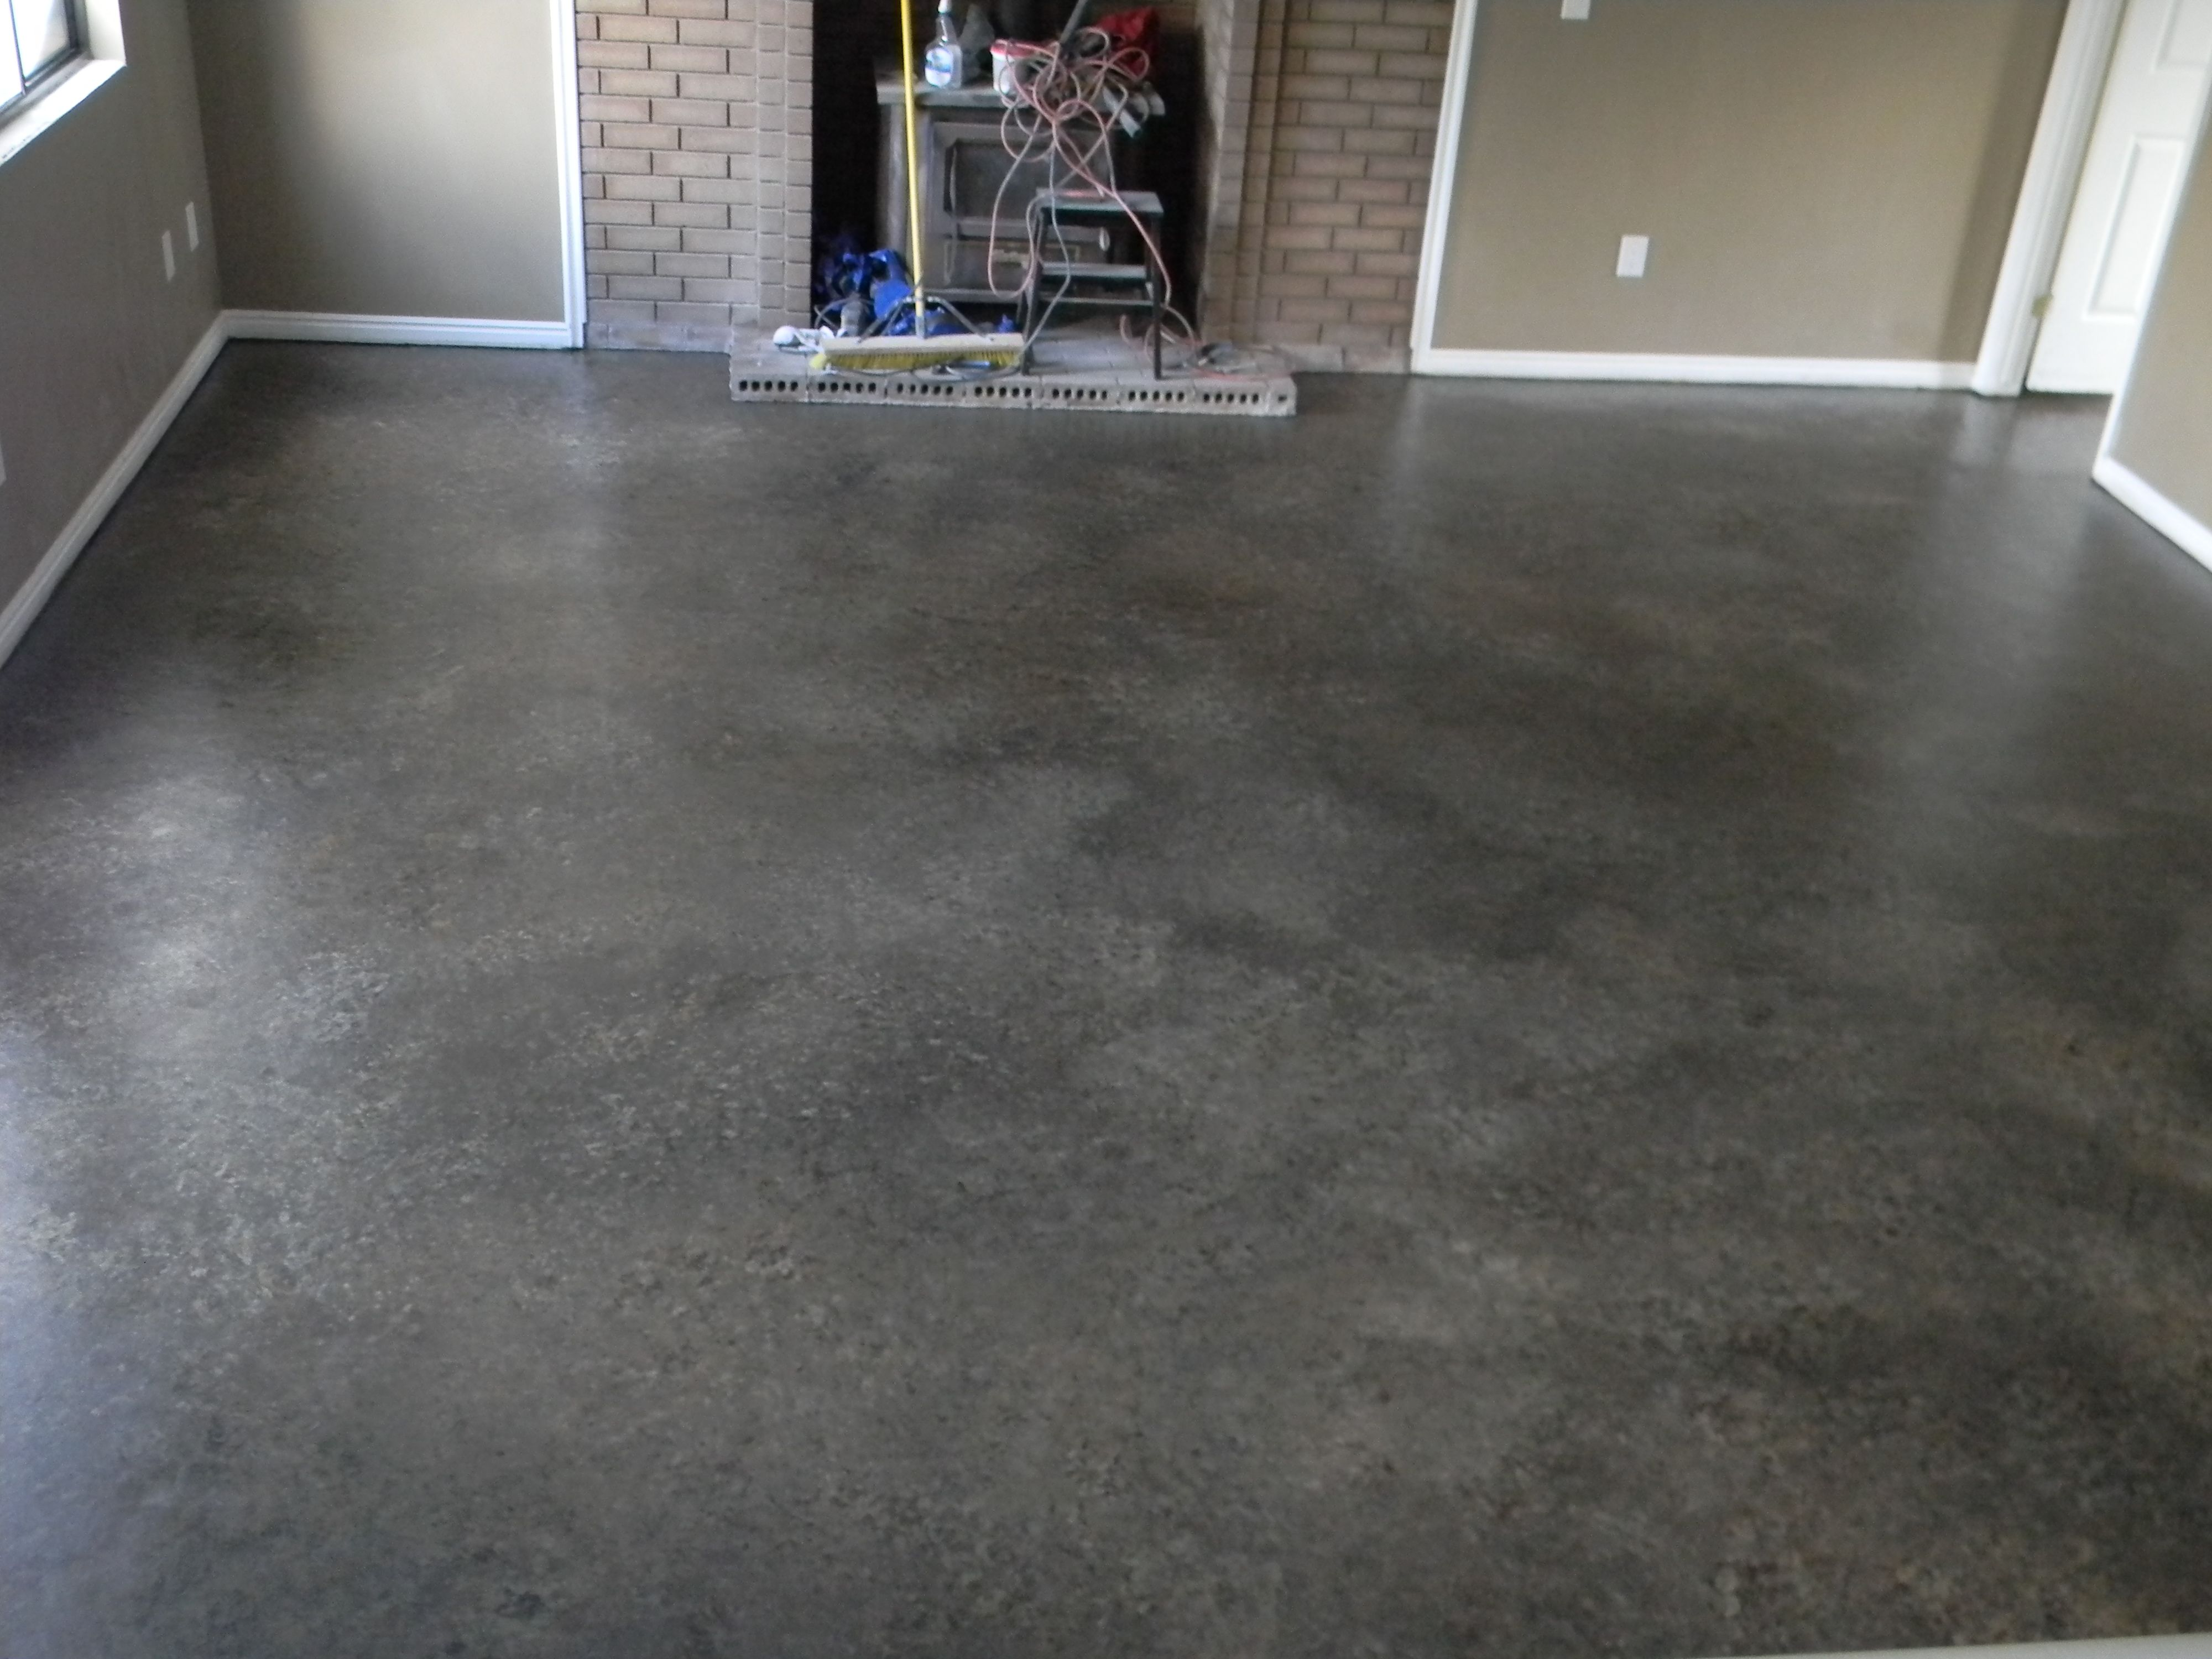 My Best Diy Project Yet I Painted Concrete Floor Did It All By Myself 2 Cans Of Lowes And Paint In Gray For The Primer